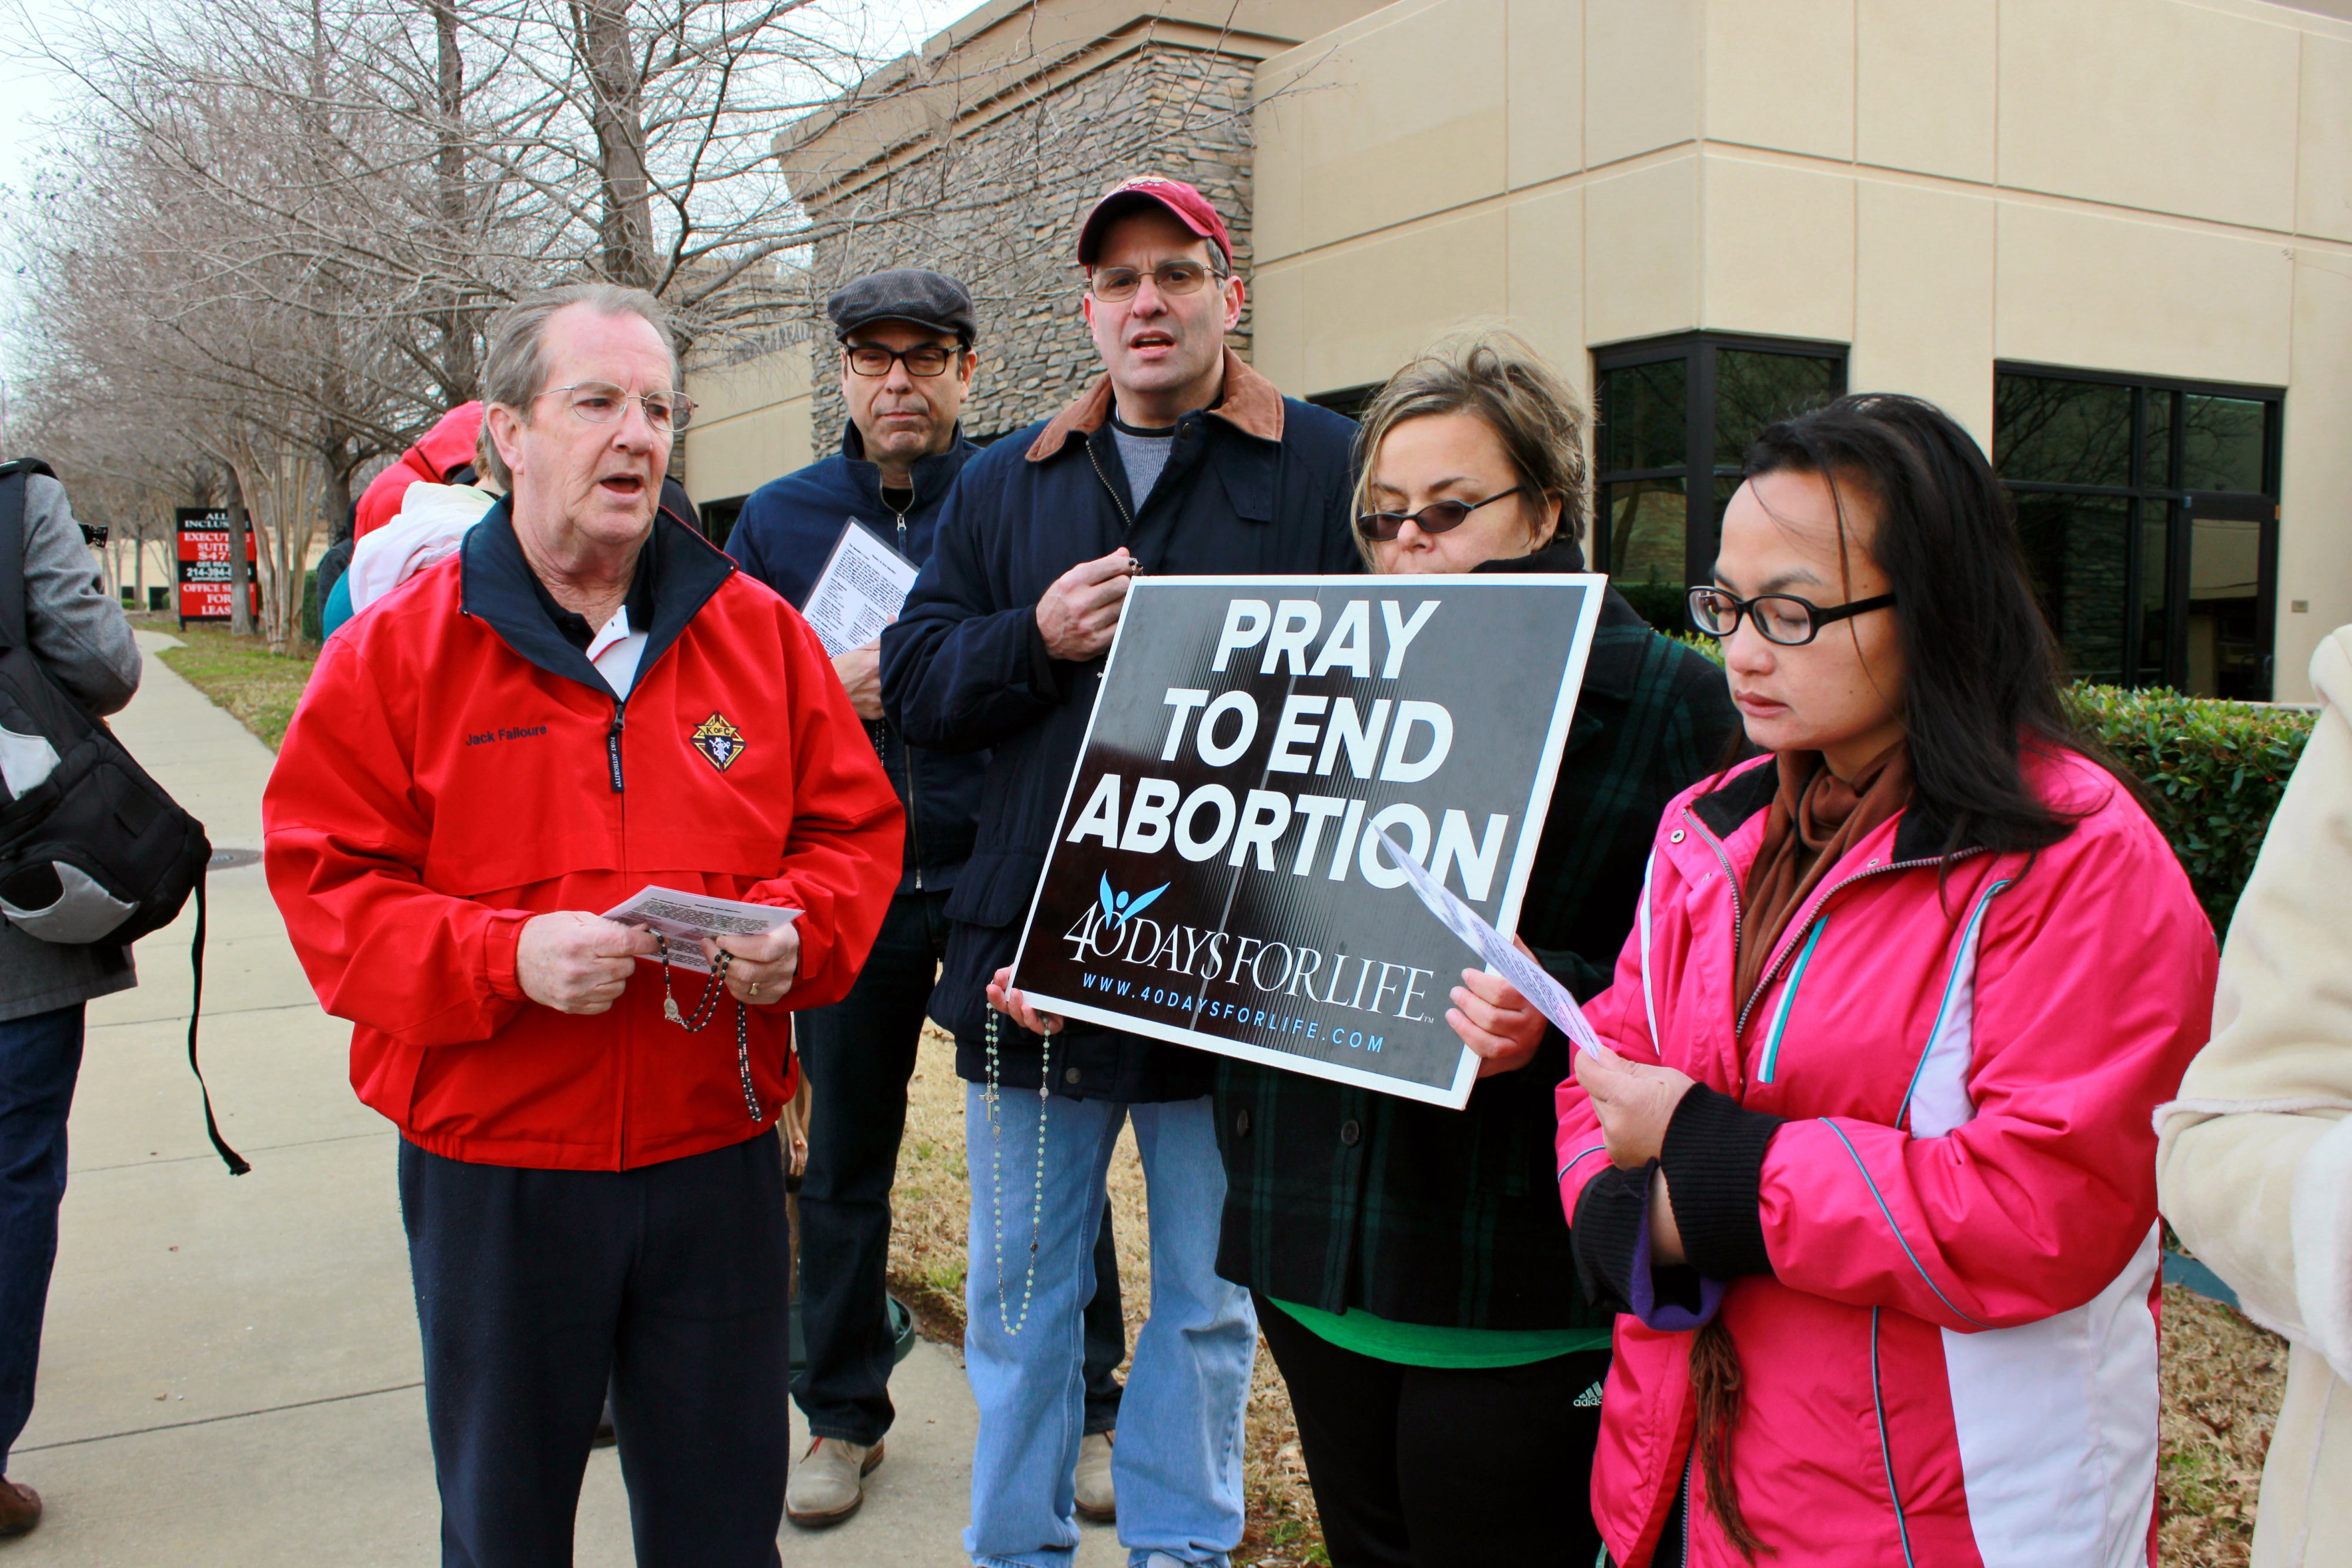 people praying outside abortion facility